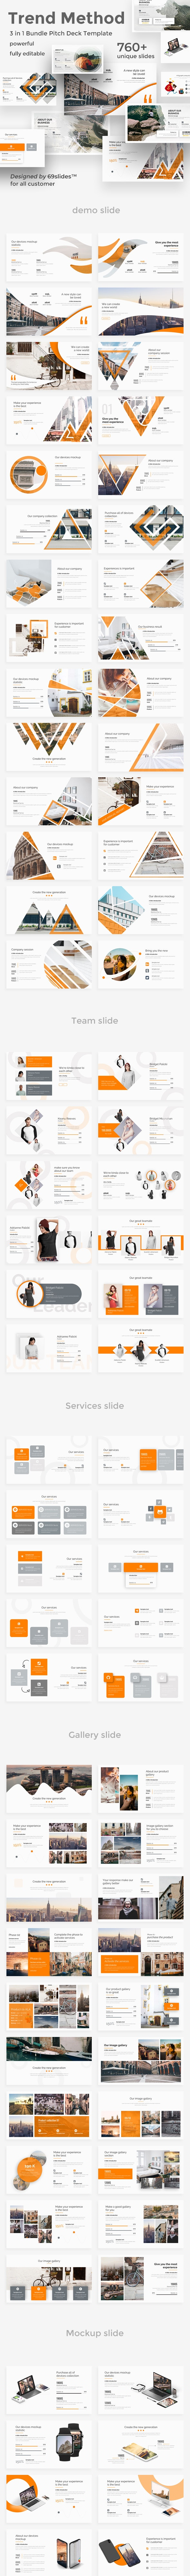 3 in 1 Trend Method Pitch Deck Bundle Powerpoint Template - Business PowerPoint Templates